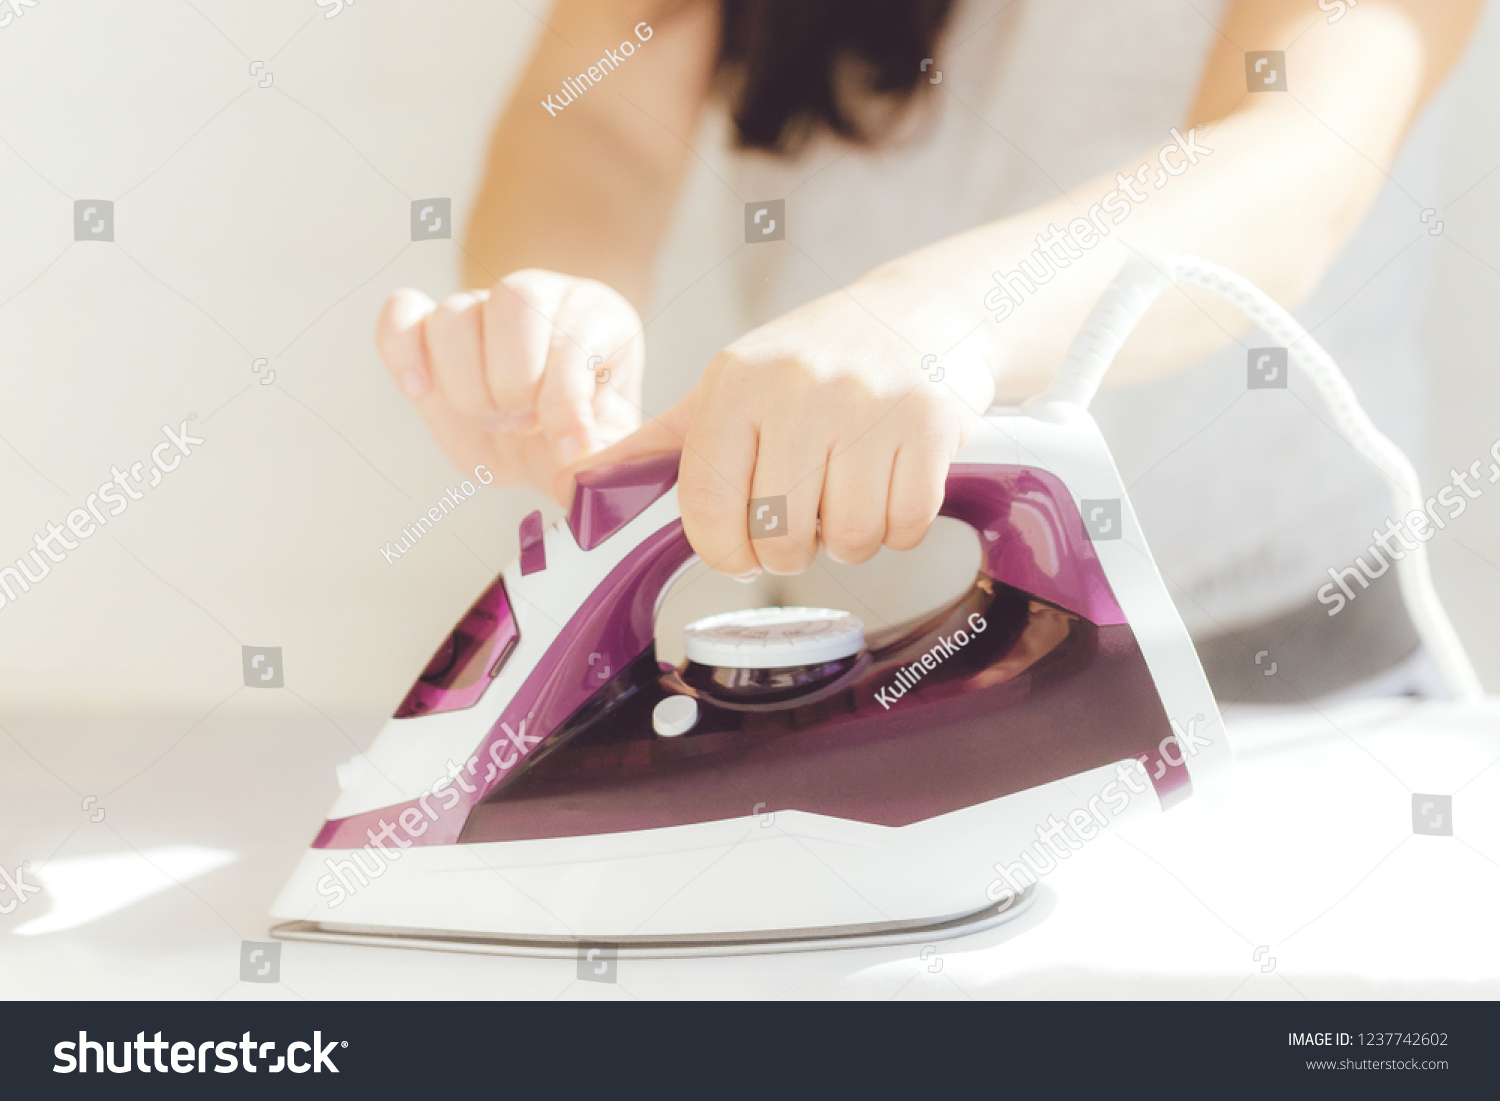 A young woman is ironing the shirt on the ironing board at home. Focus on hand and shirt's button.girl's hands iron clothes iron #1237742602